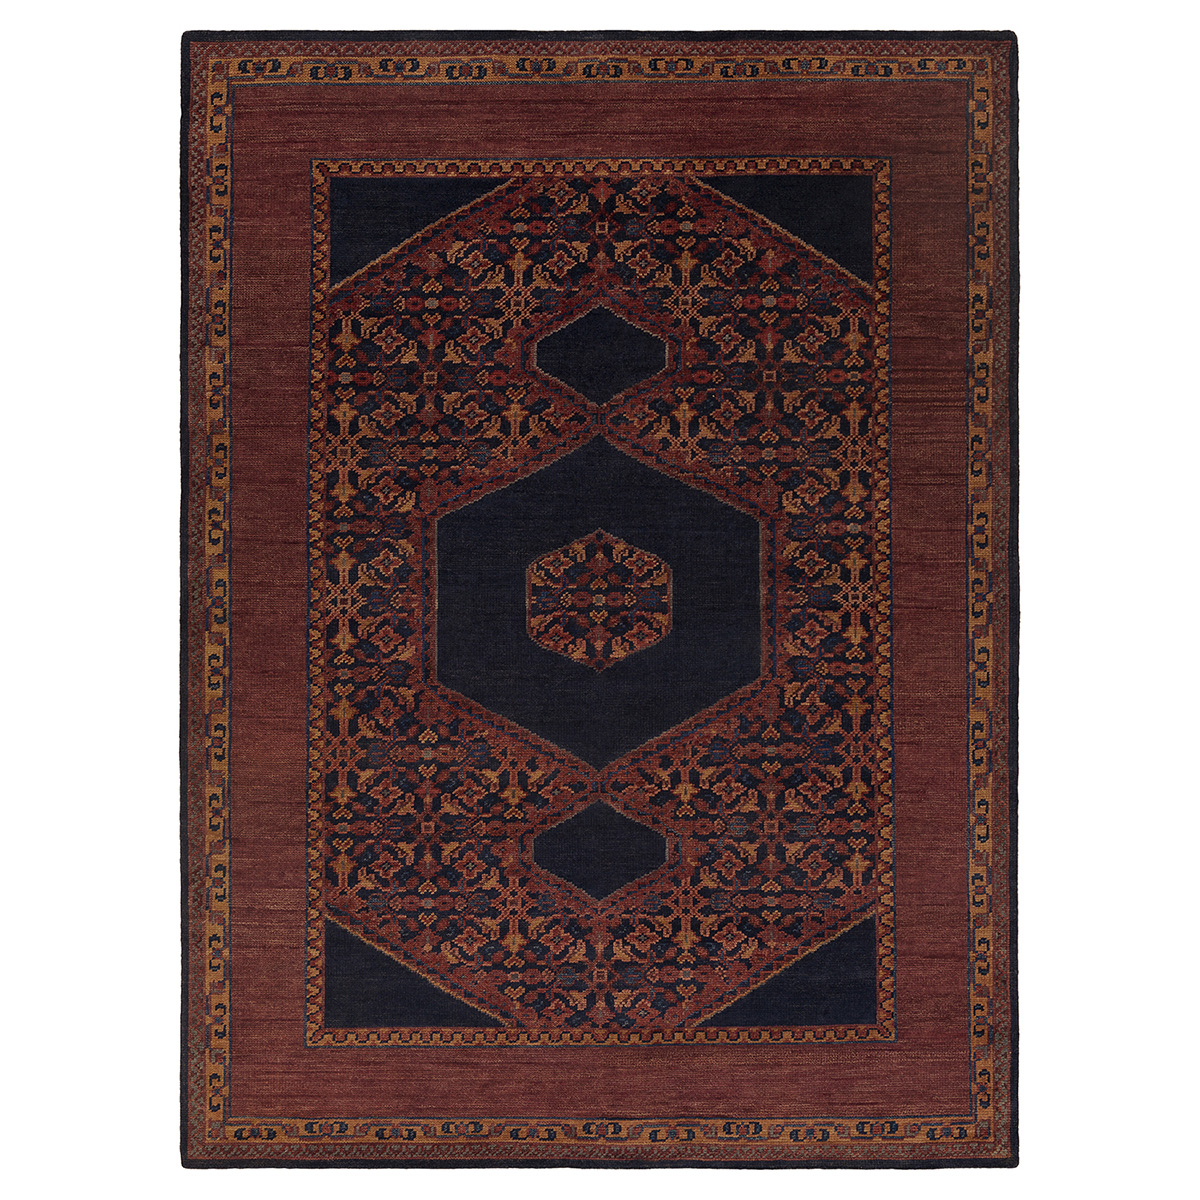 Priya Bazaar Antique Wash Burgundy Wool Rug - 9x13